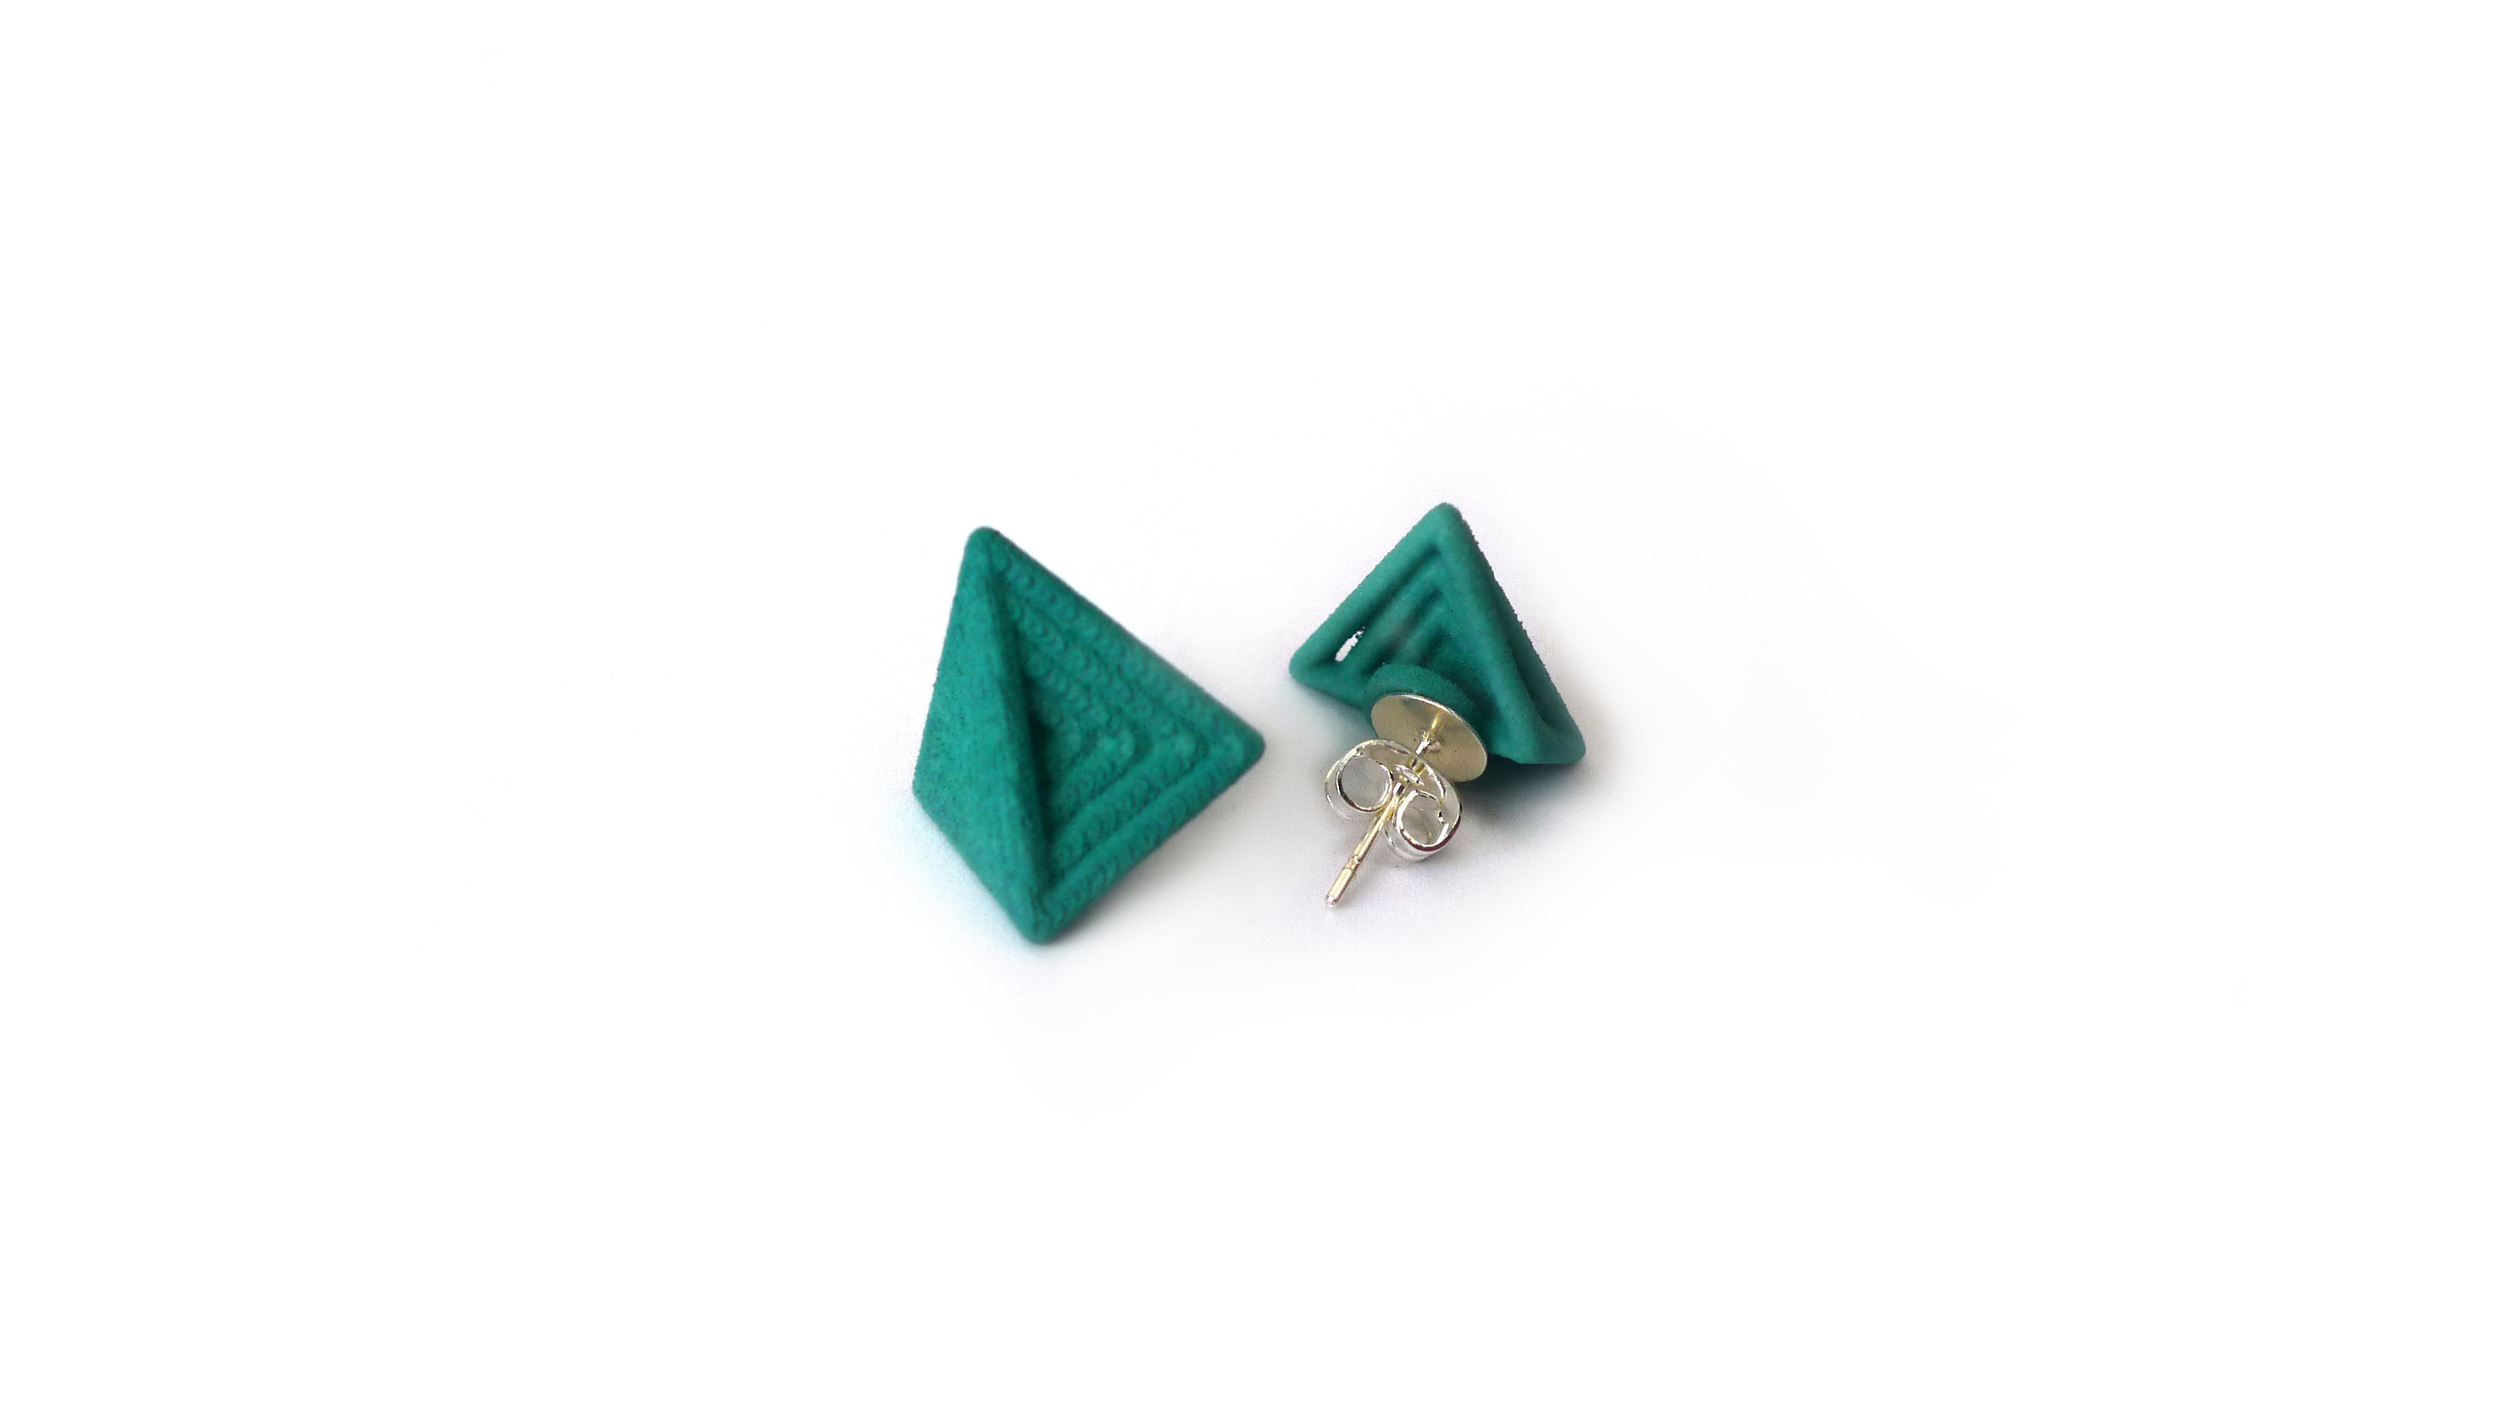 Tetryn Earrings (Mini Studs)   6450: In Nylon $9  6495: In Steel $44